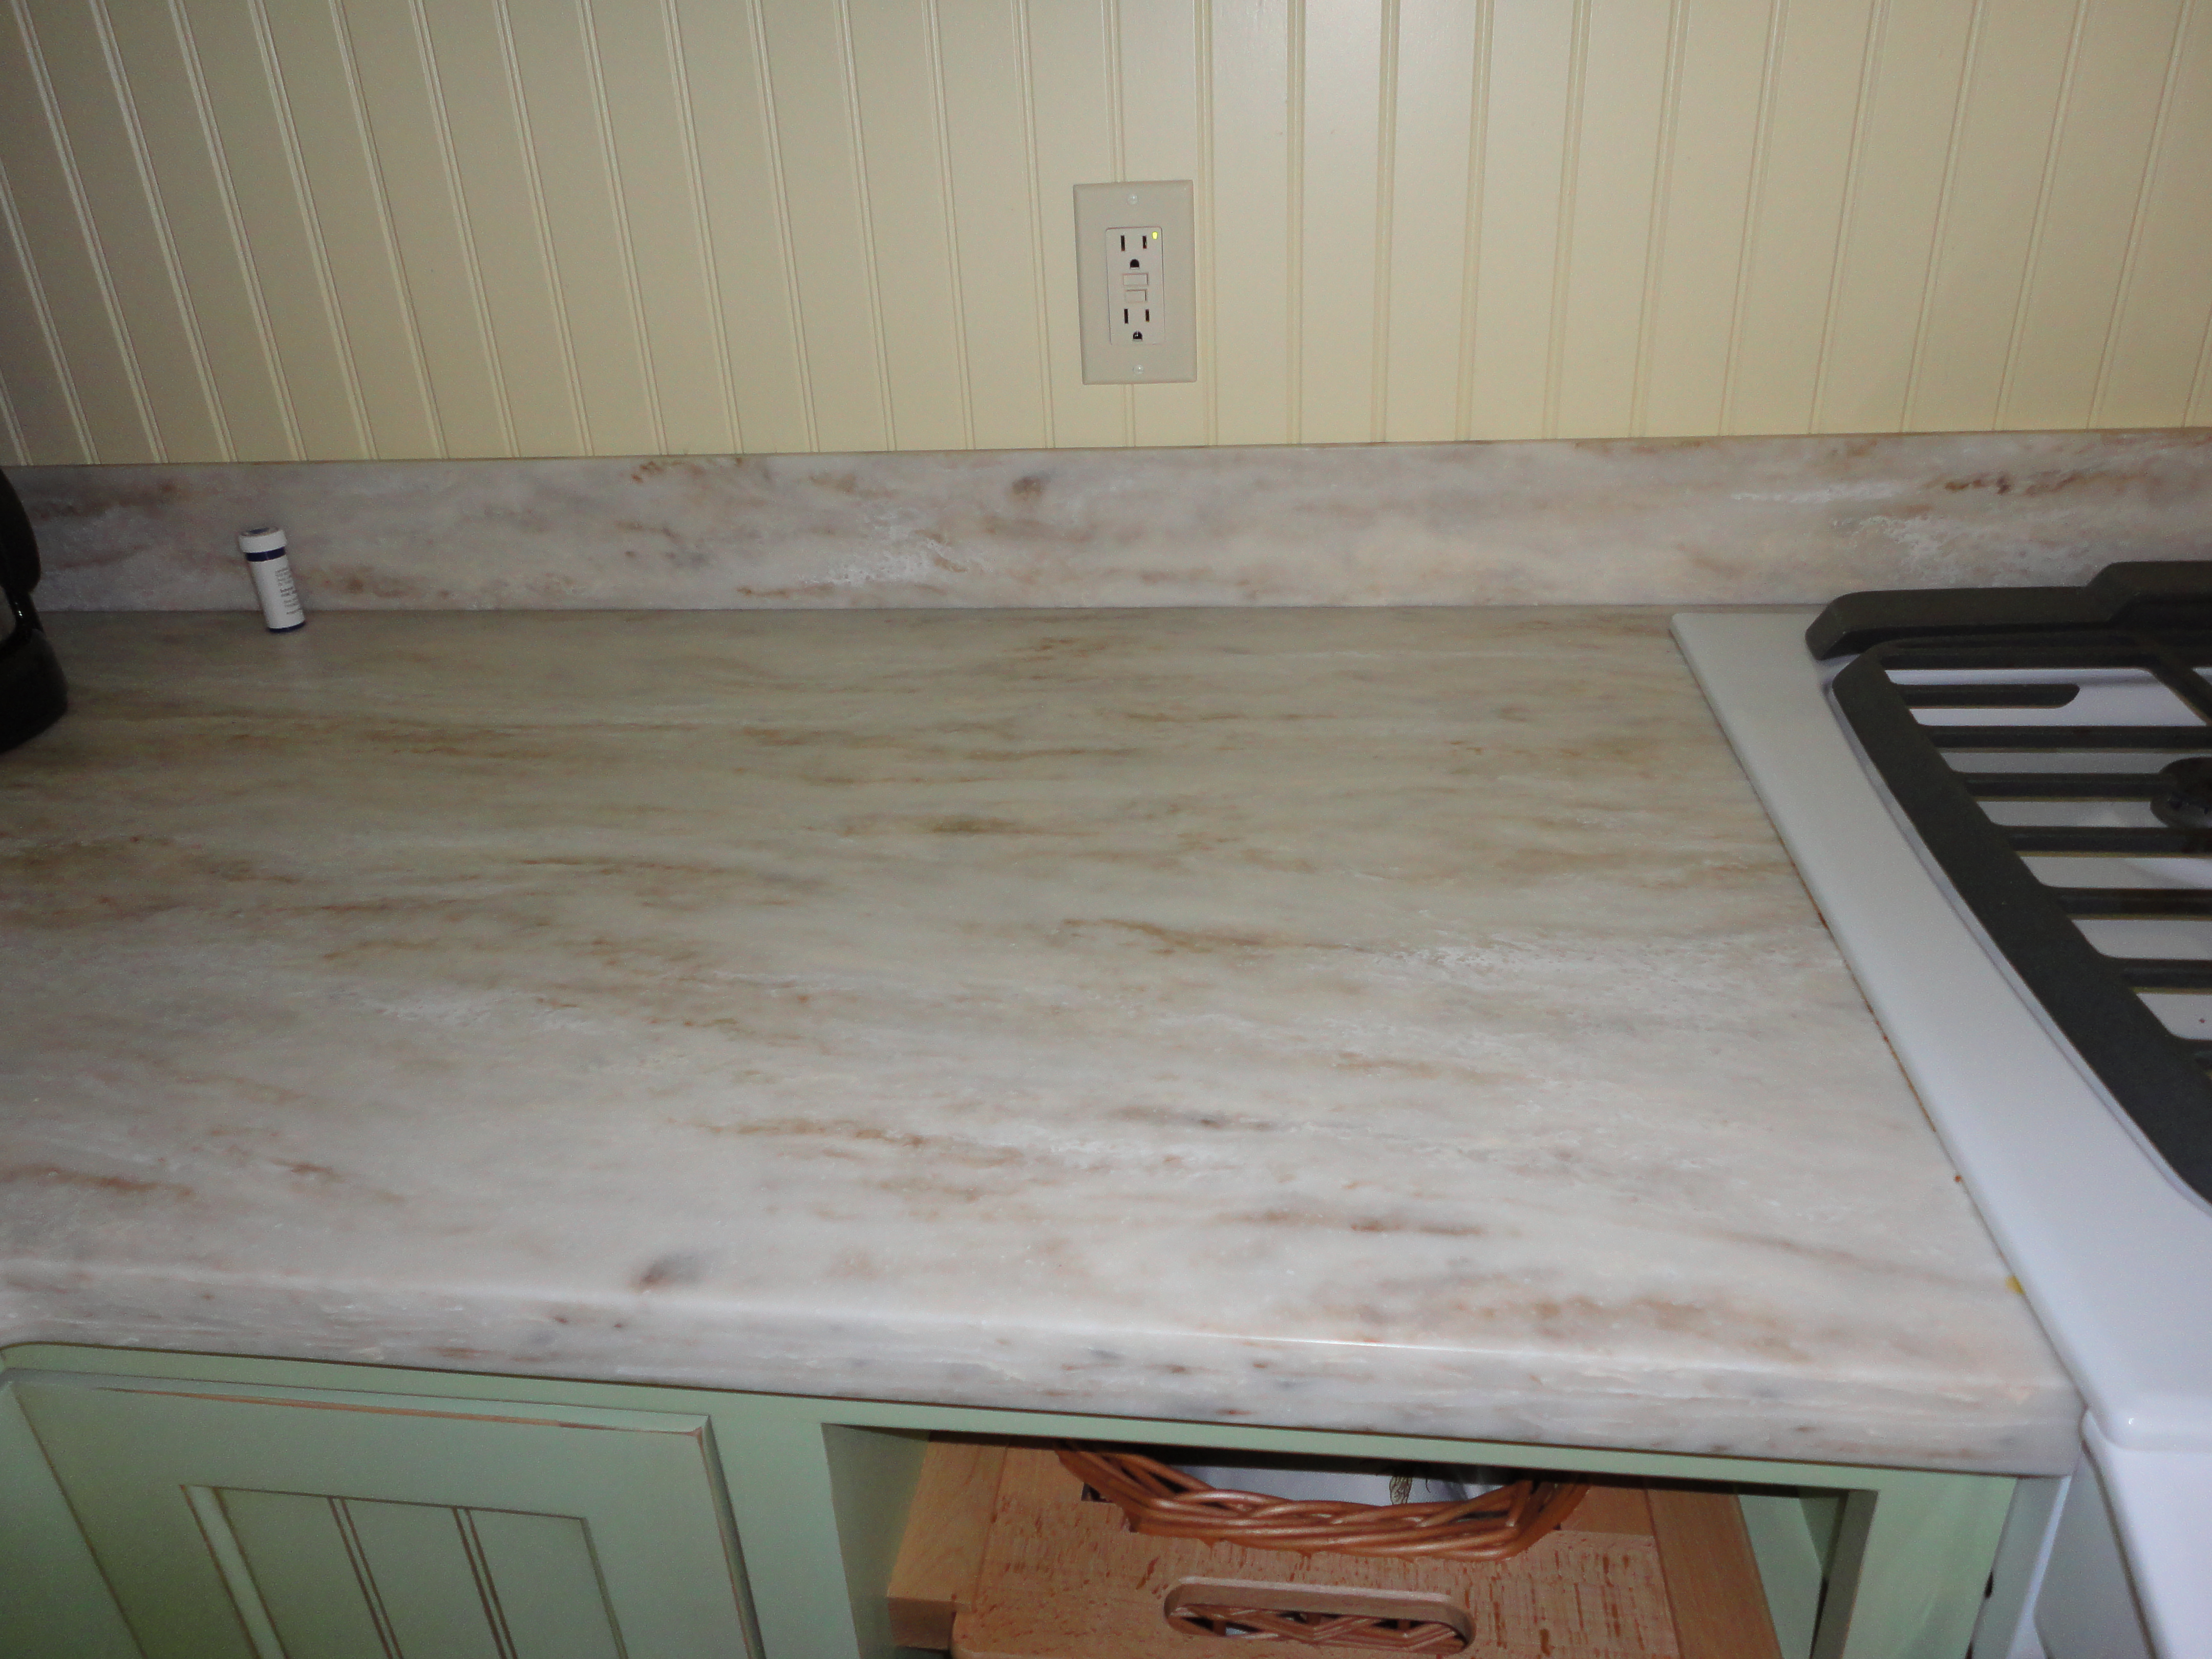 used corian countertops for sale corian kitchen countertops Corian Tile Countertops Kitchen Solid Surface